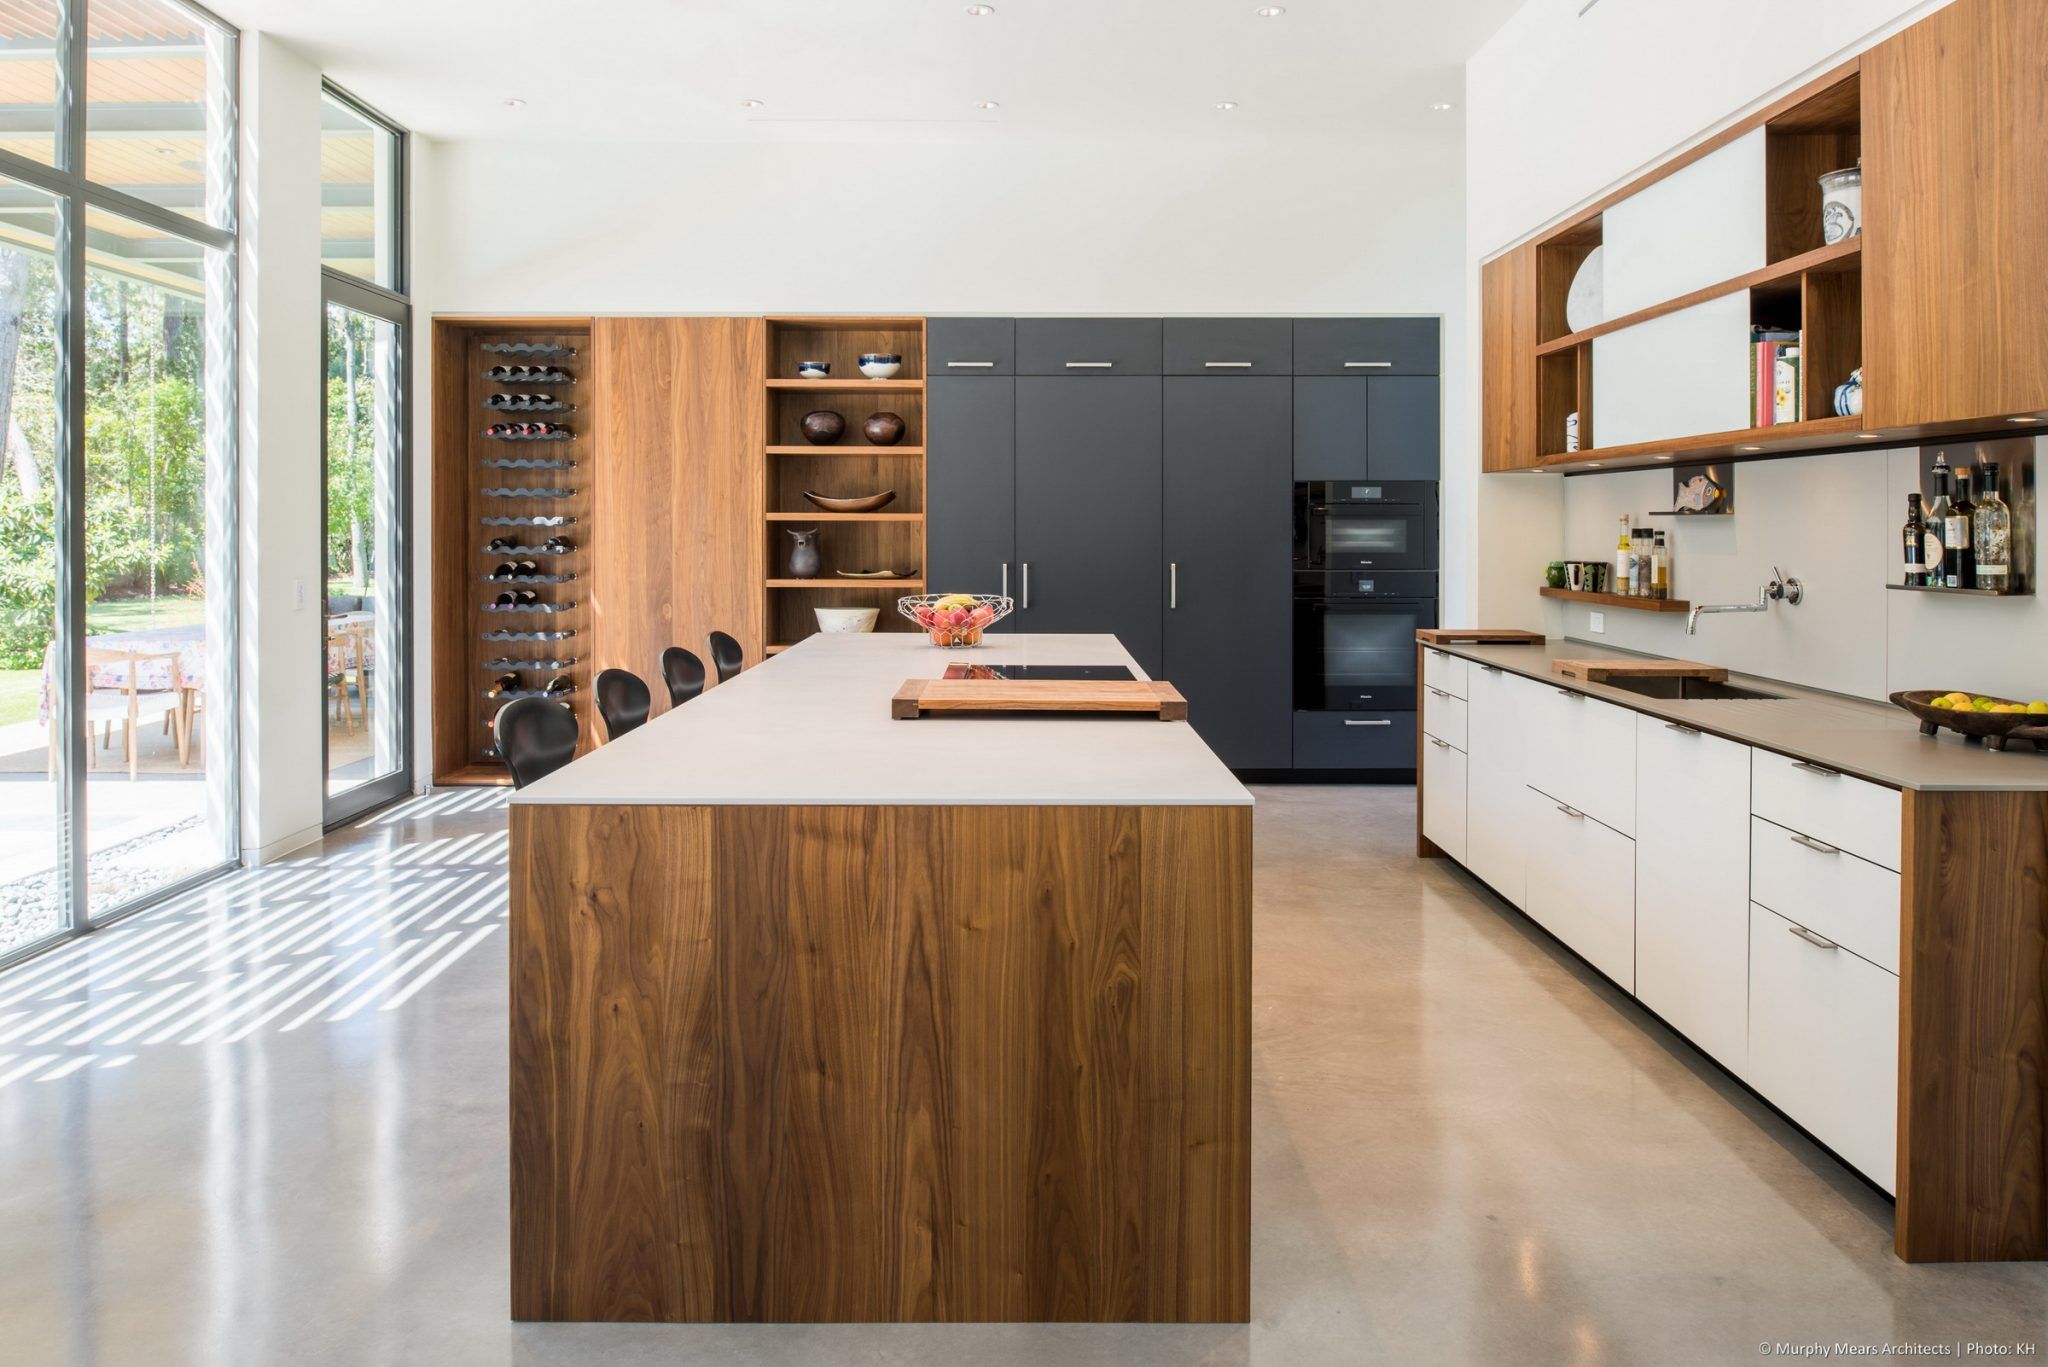 Carlton Woods Residence - A central island and two storage walls arranged for open flow through the kitchen and generous views of the backyard space.